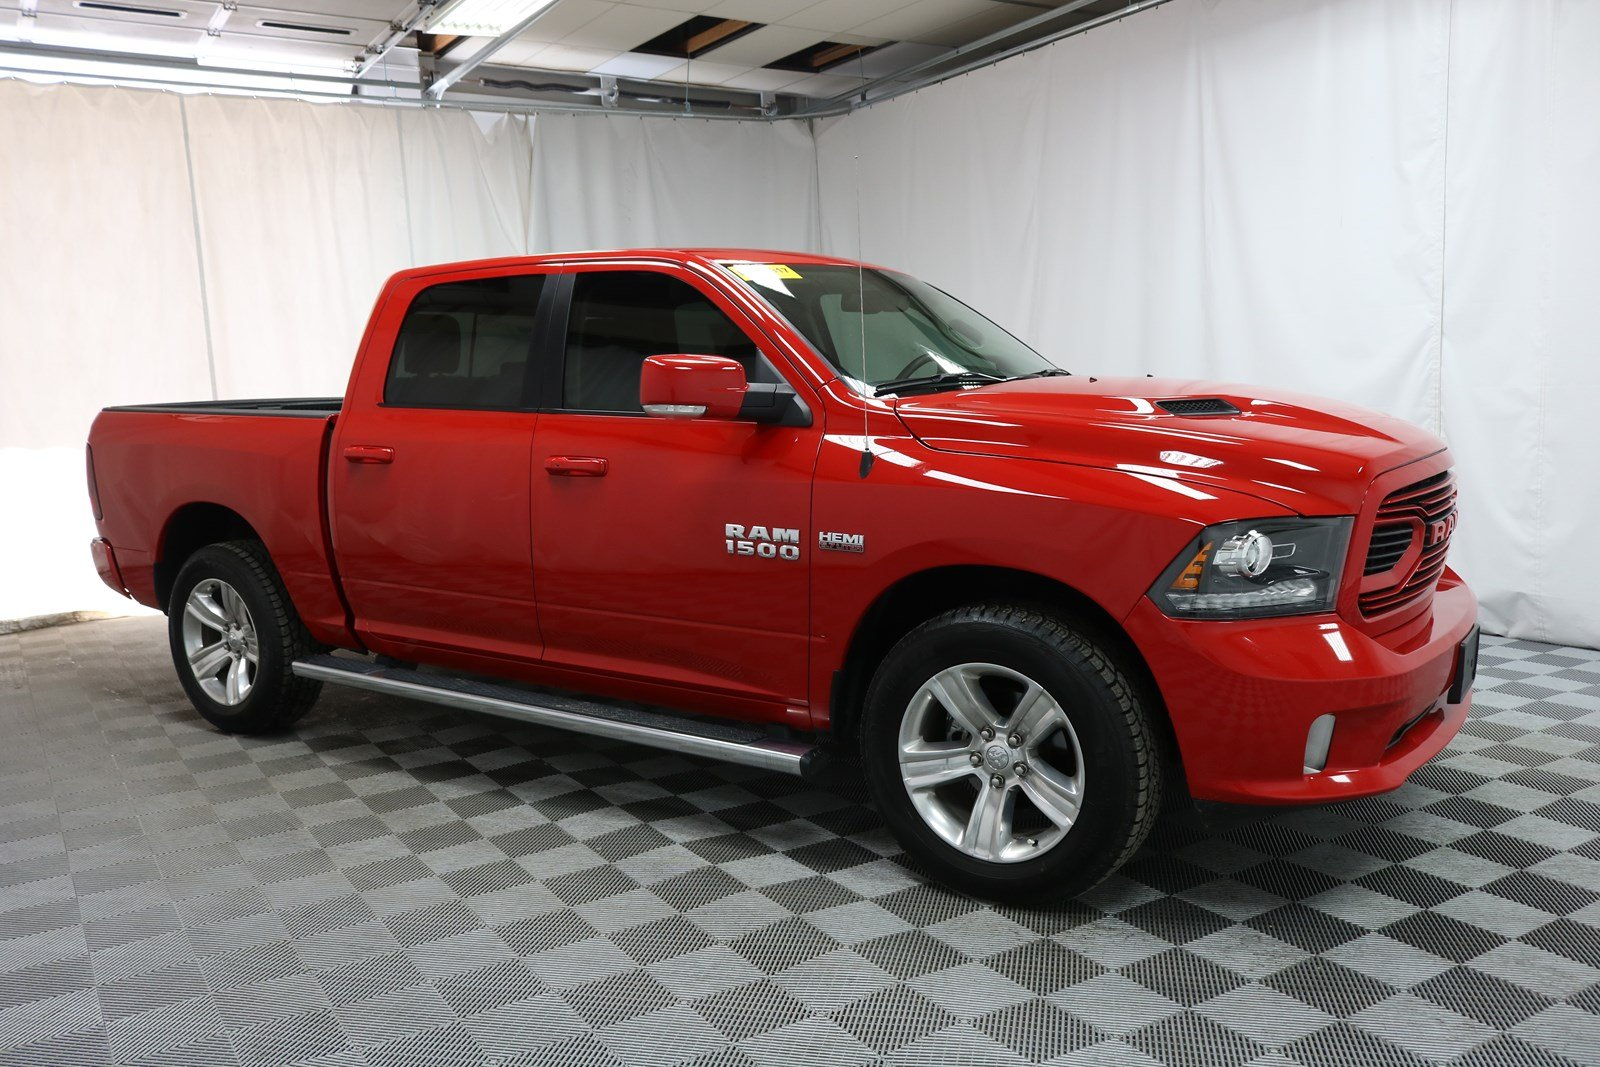 Pre Owned 2018 Ram 1500 Crew Cab Sport 4x4 Truck In Wichita U570857 Super Car Guys